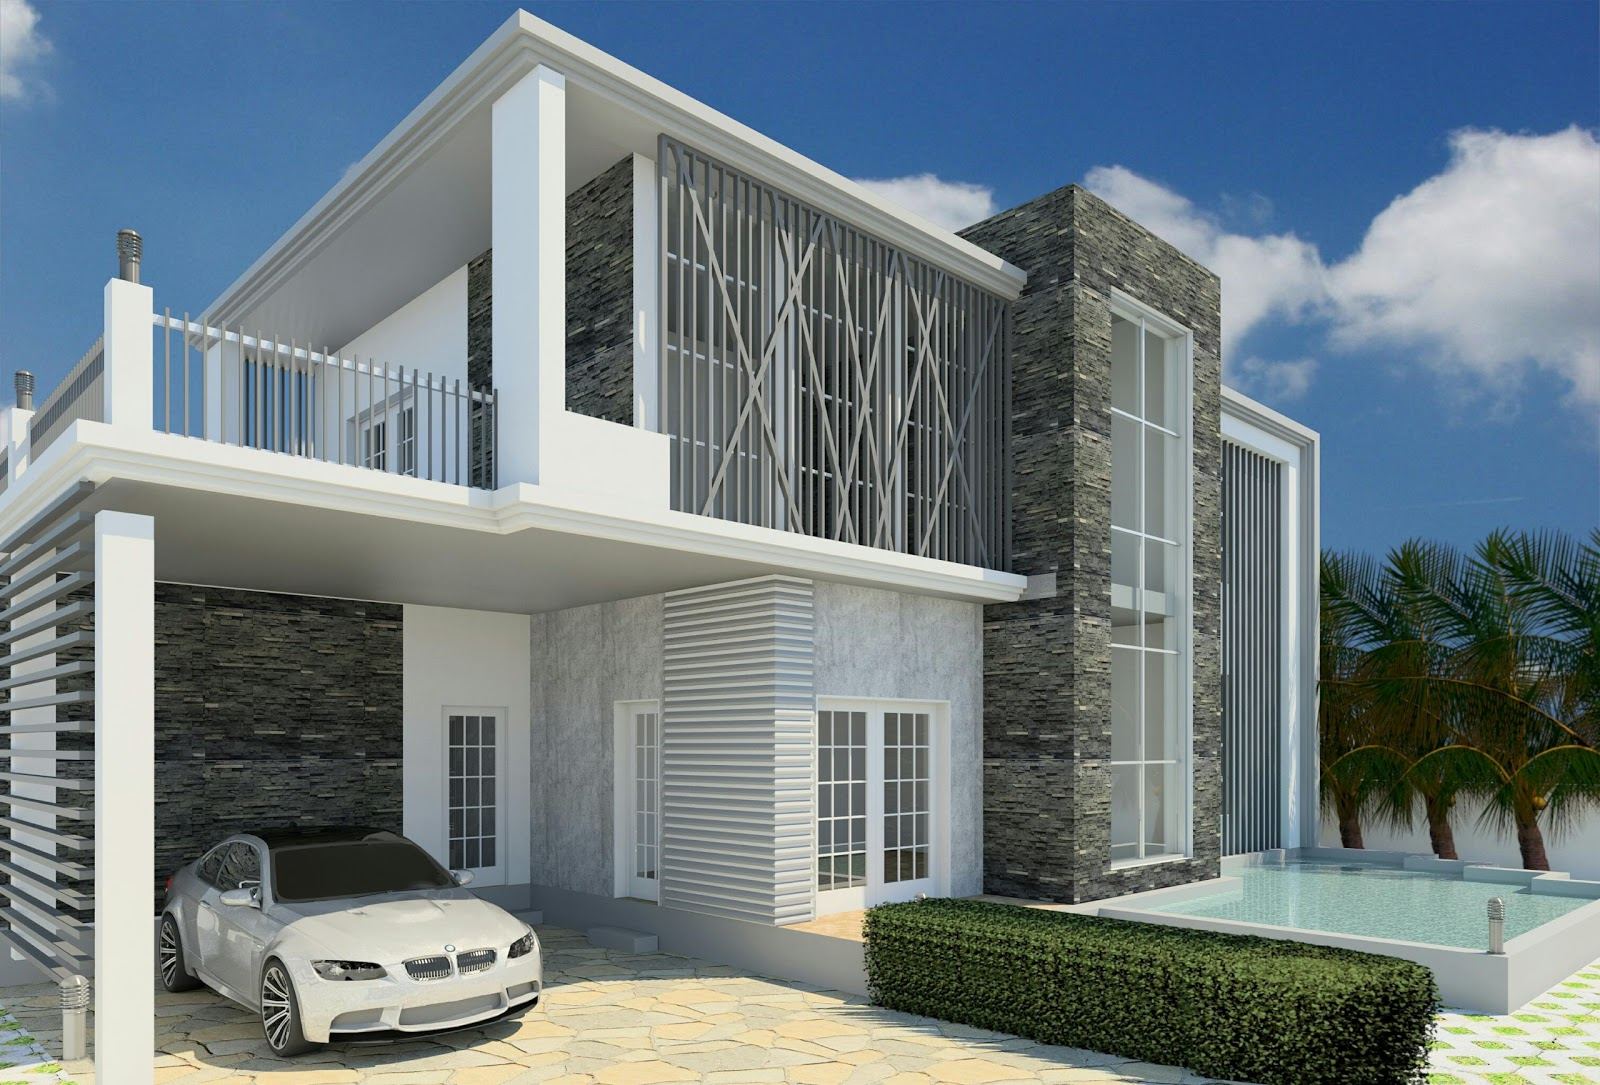 Revit architecture modern house design 8 cad needs for Modern house architecture